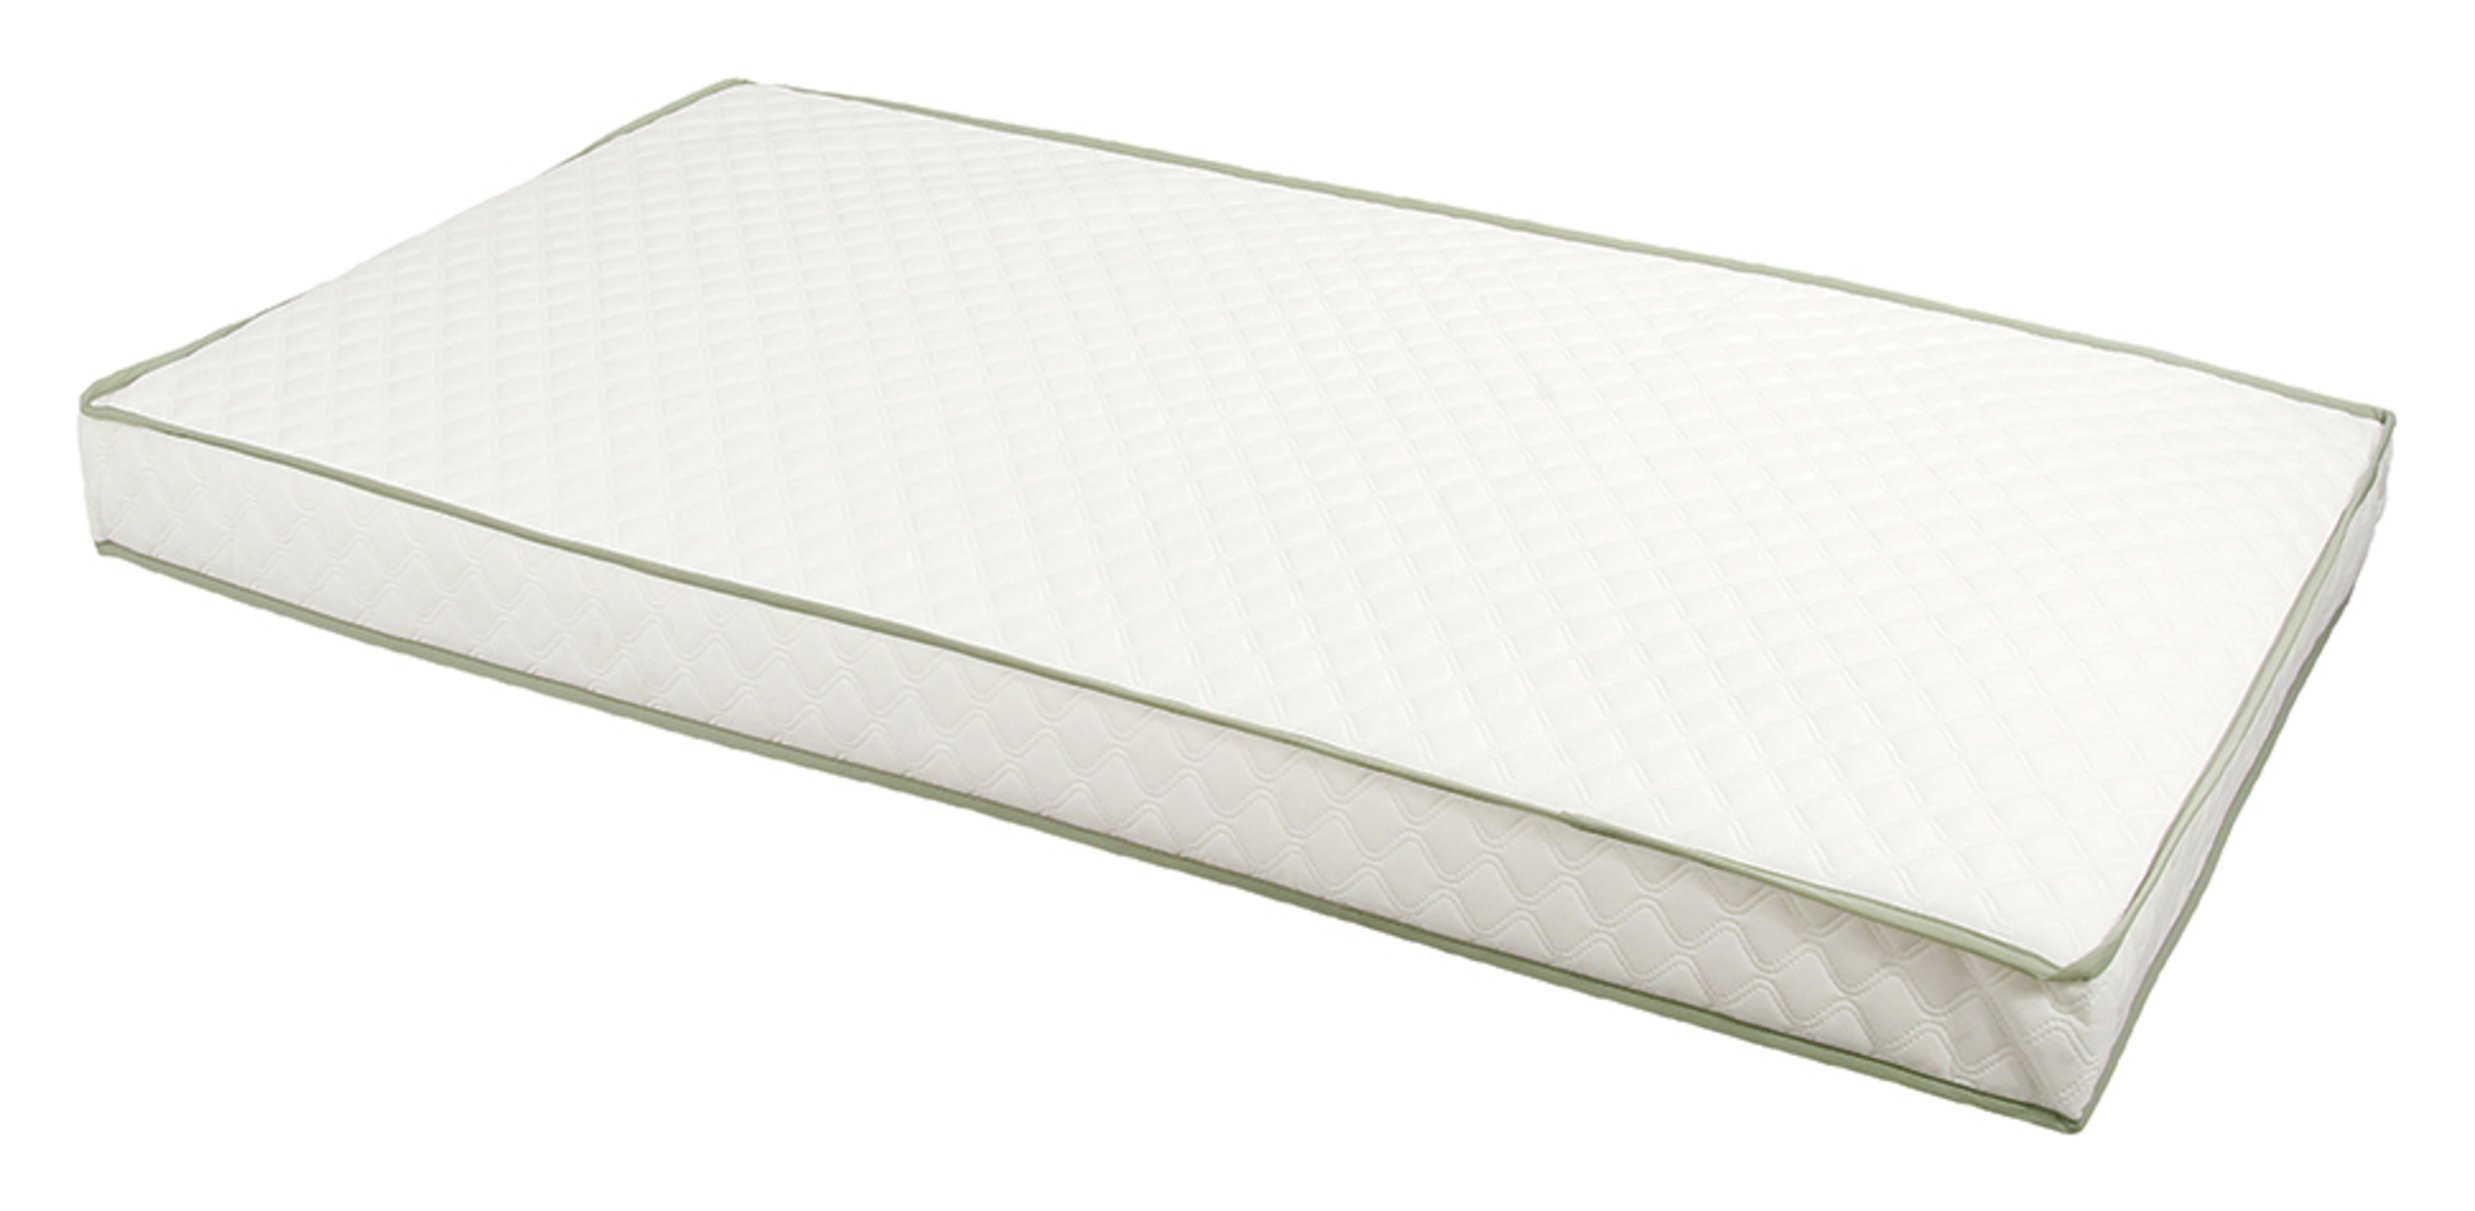 Image of Boori Standard Mattress - 132 x 70cm